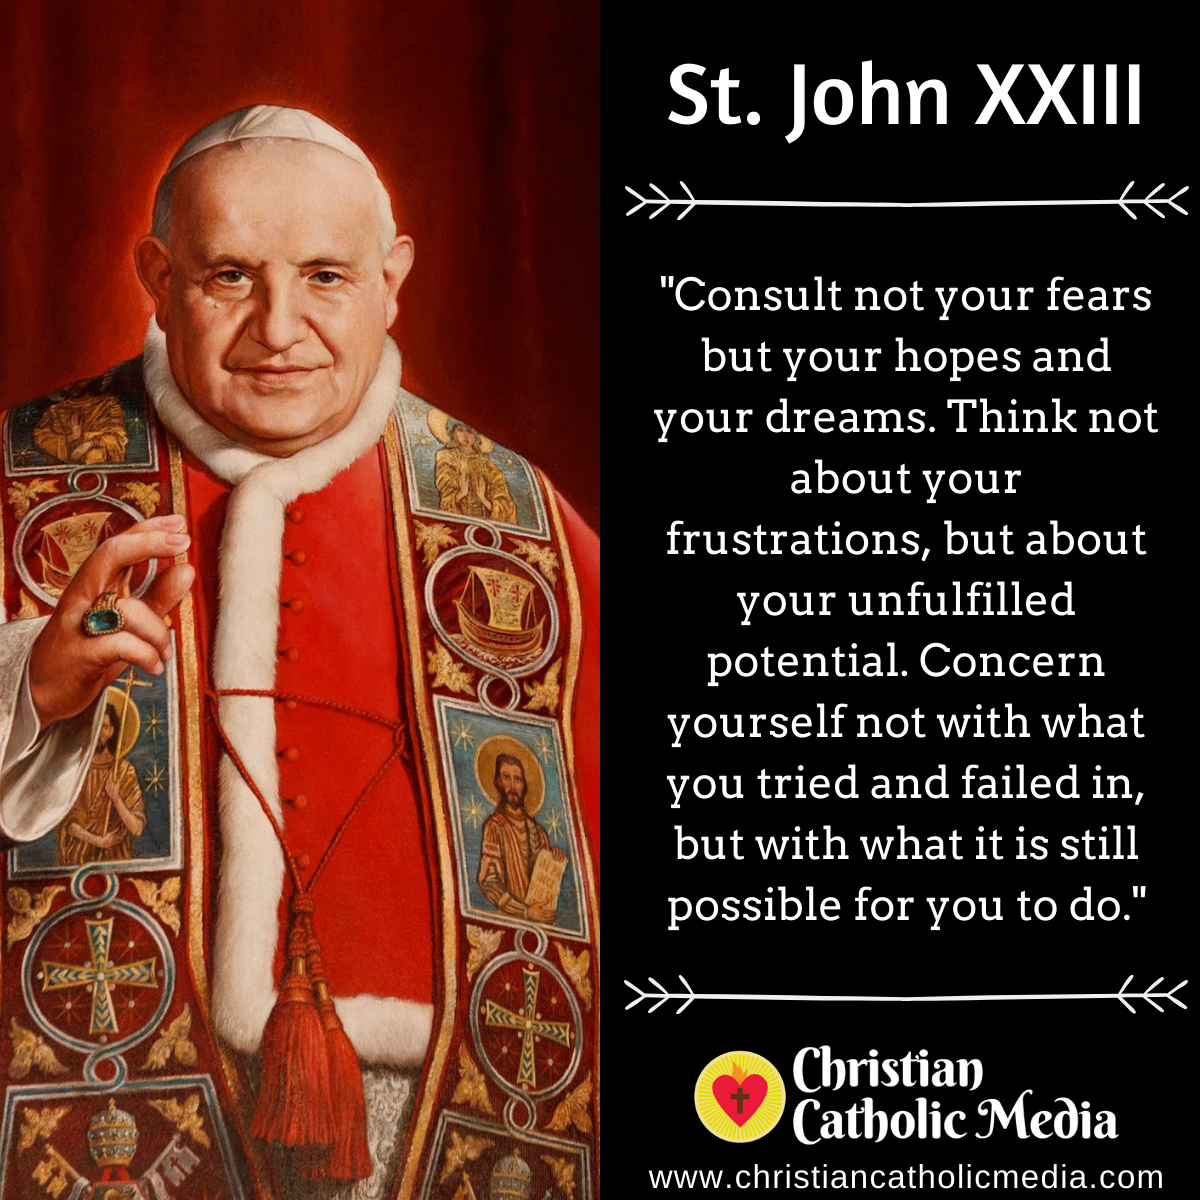 St. John XXIII - Sunday October 11, 2020